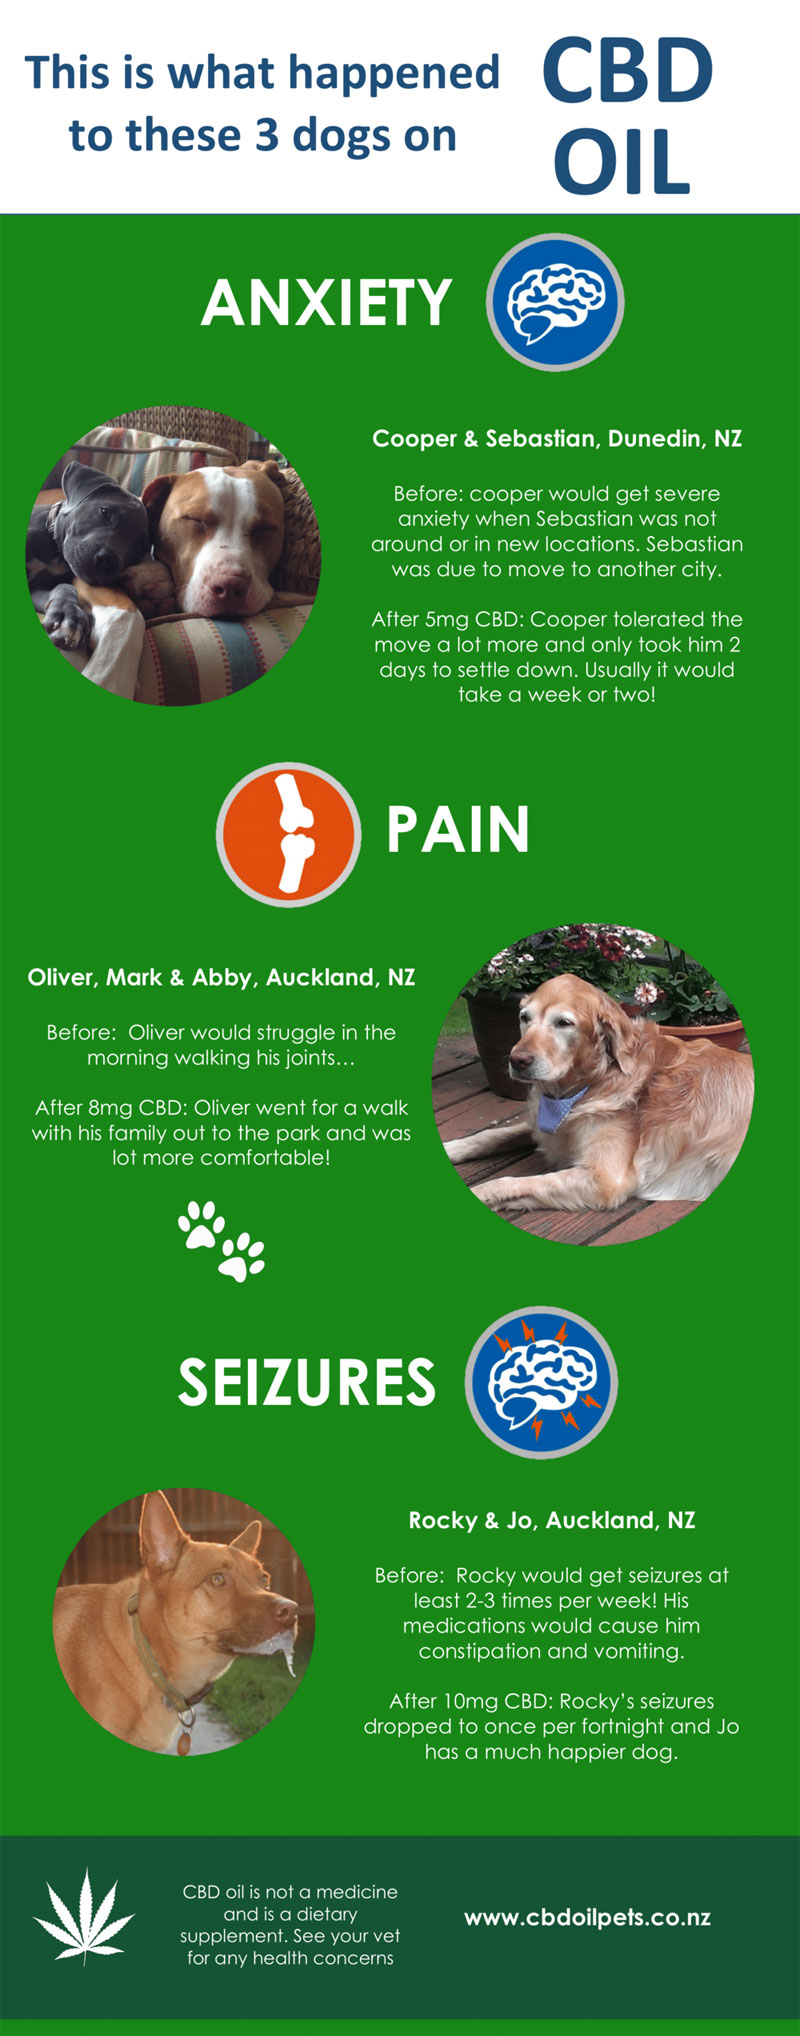 The Story of 3 Dogs Using CBD Oil